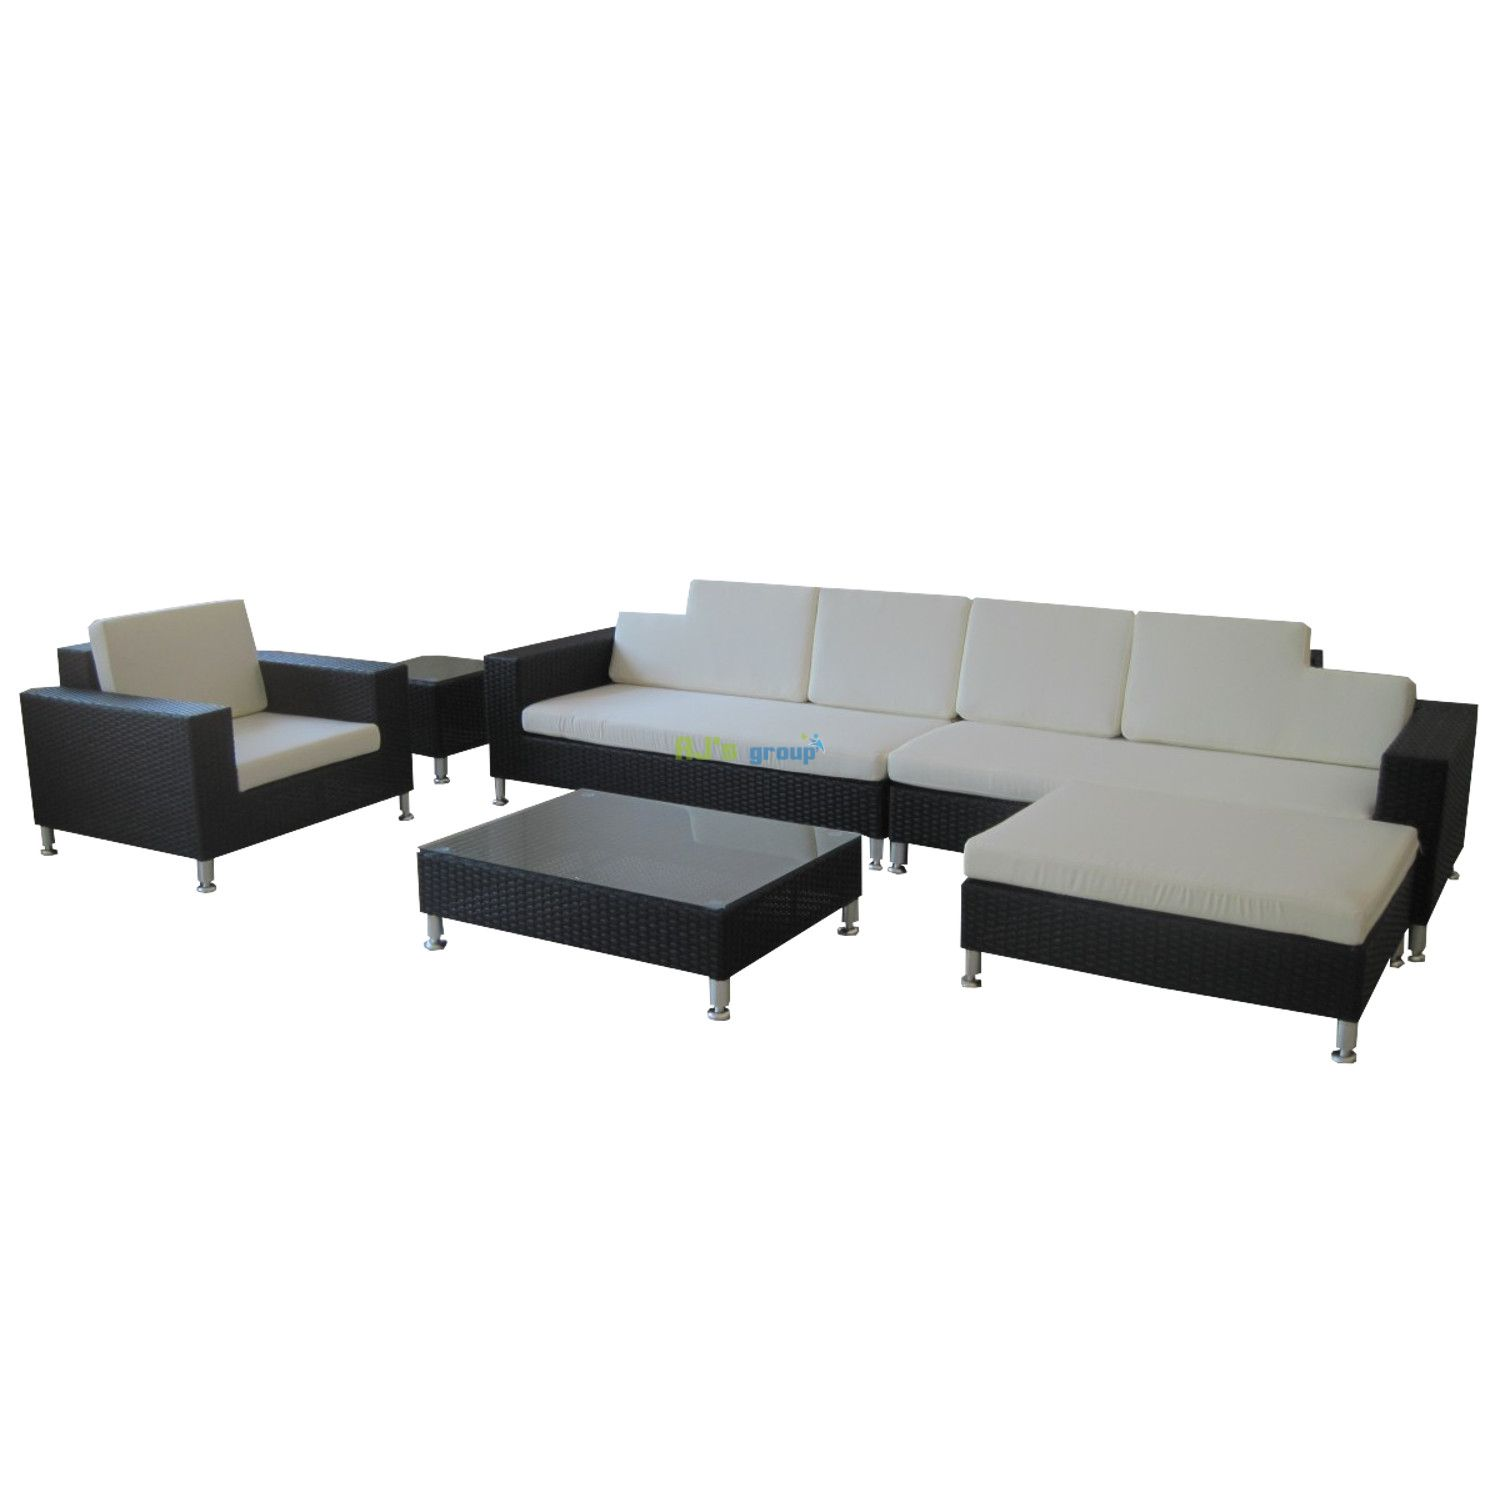 gartenmobel lounge set obi interessante. Black Bedroom Furniture Sets. Home Design Ideas